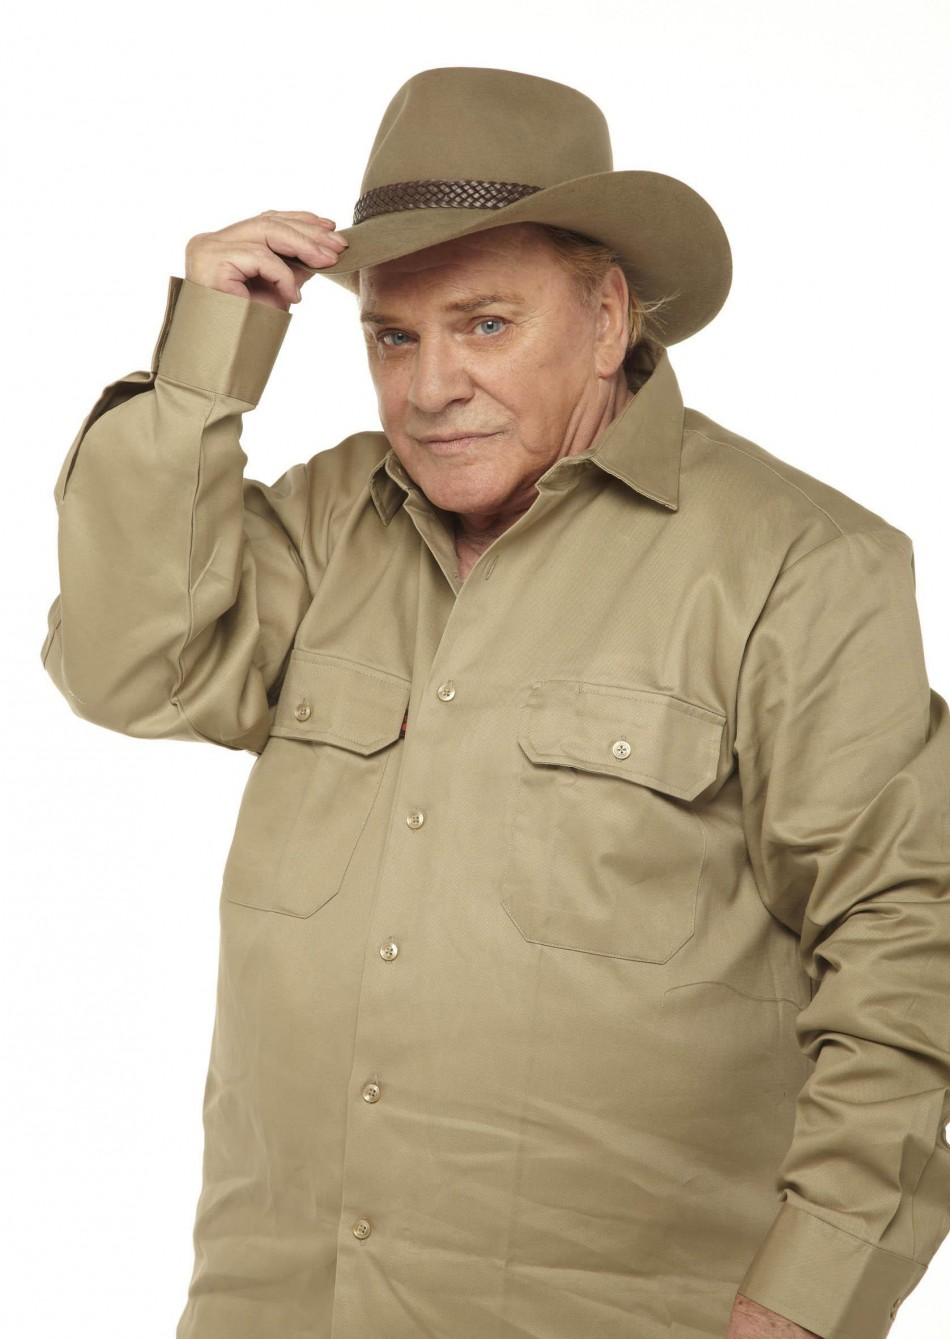 ITV undated handout photo of Freddie Starr, one of the contestants in this year's I'm A Celebrity.... Get Me Out Of Here. Starr was forced to drop out of the reality show after being advised by doctors for health reasons.